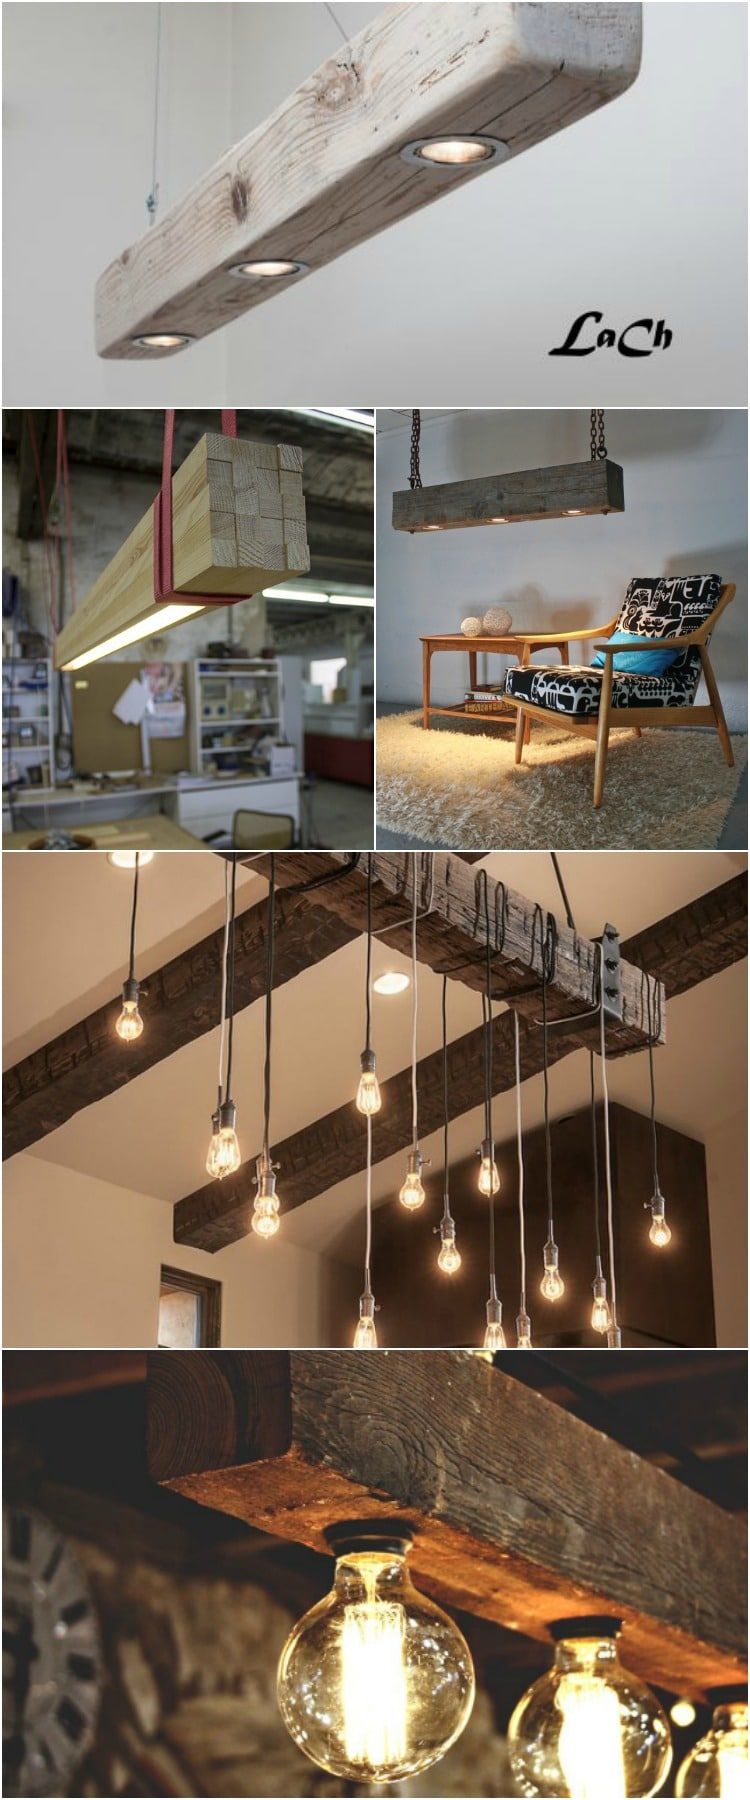 Have a look at these reclaimed wood beams chandelier ideas. Great in a vintage interior or even a kitchen, perfect for a rustic vintage lamp as modern farmhouse lighting! #beam #rustic #chandelier #vintage #farmhouse #farmhousestyle #farmhousedecor #woodworkingprojects #woodworking #idlights